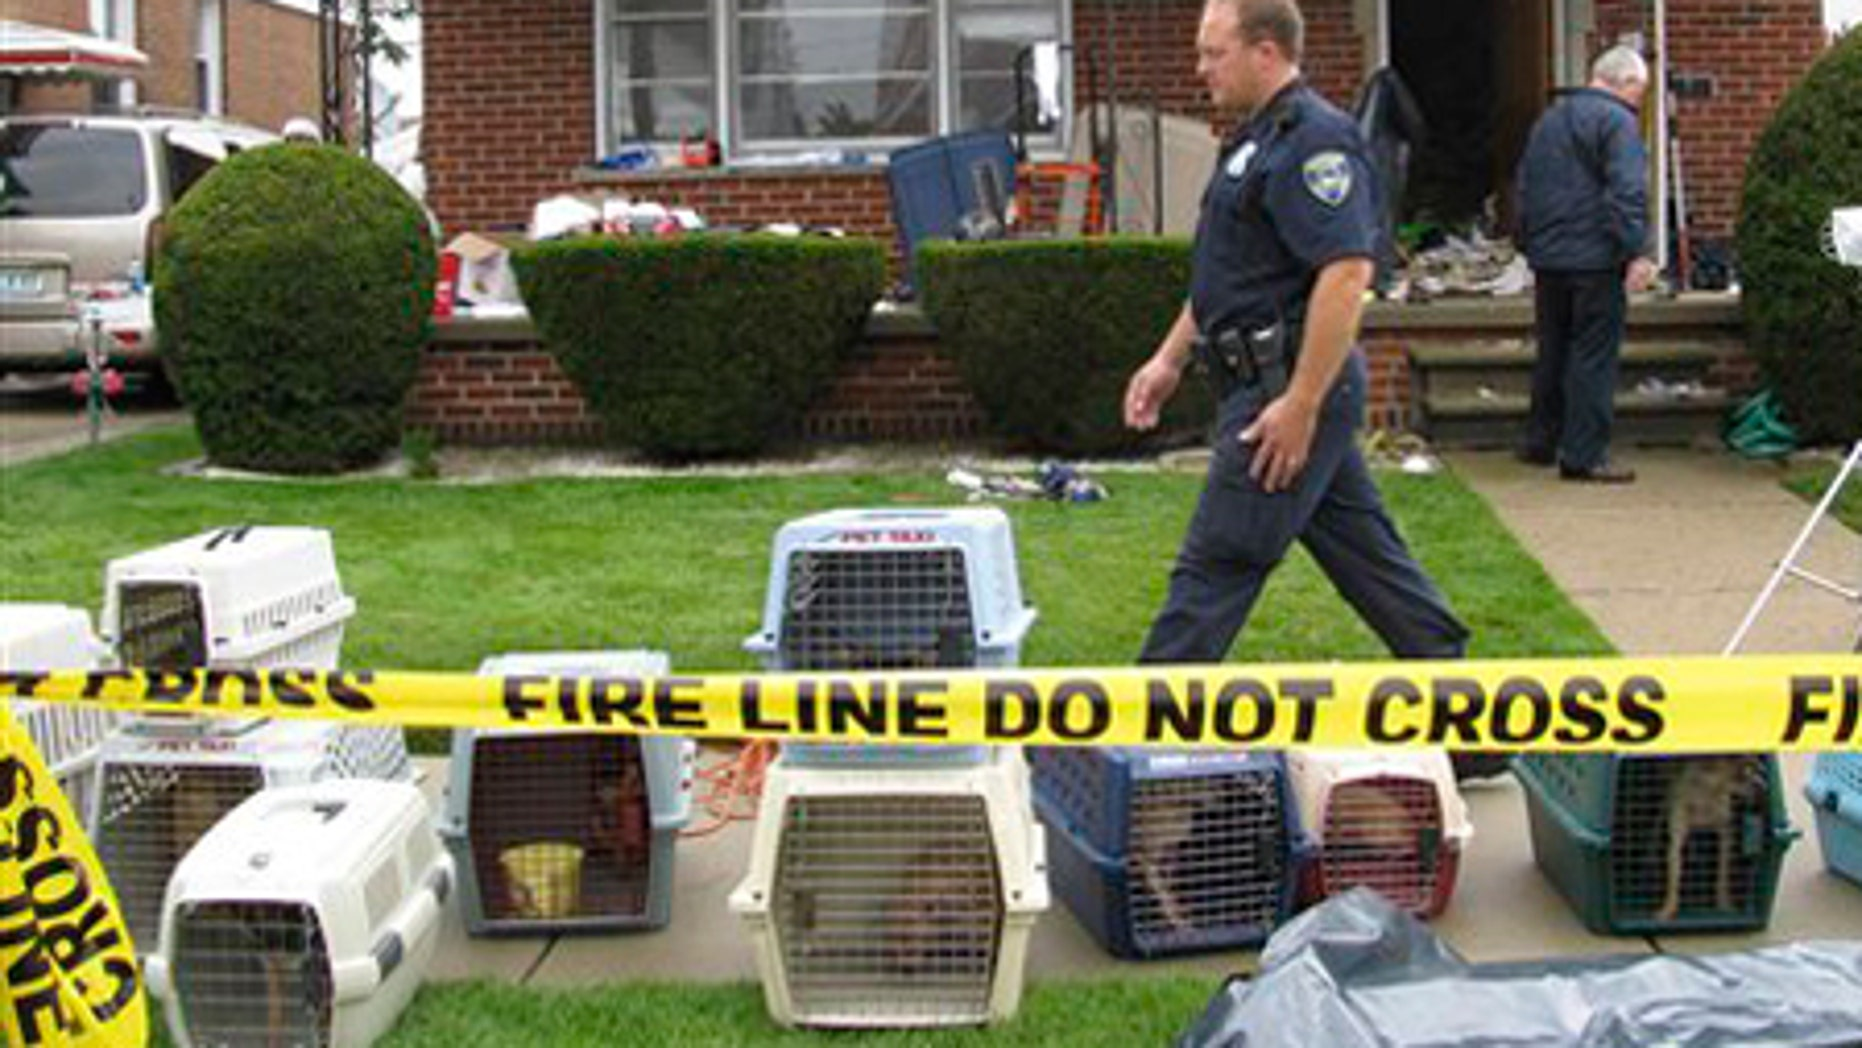 July 22: Law enforcement officials search a home in Dearborn, Mich.